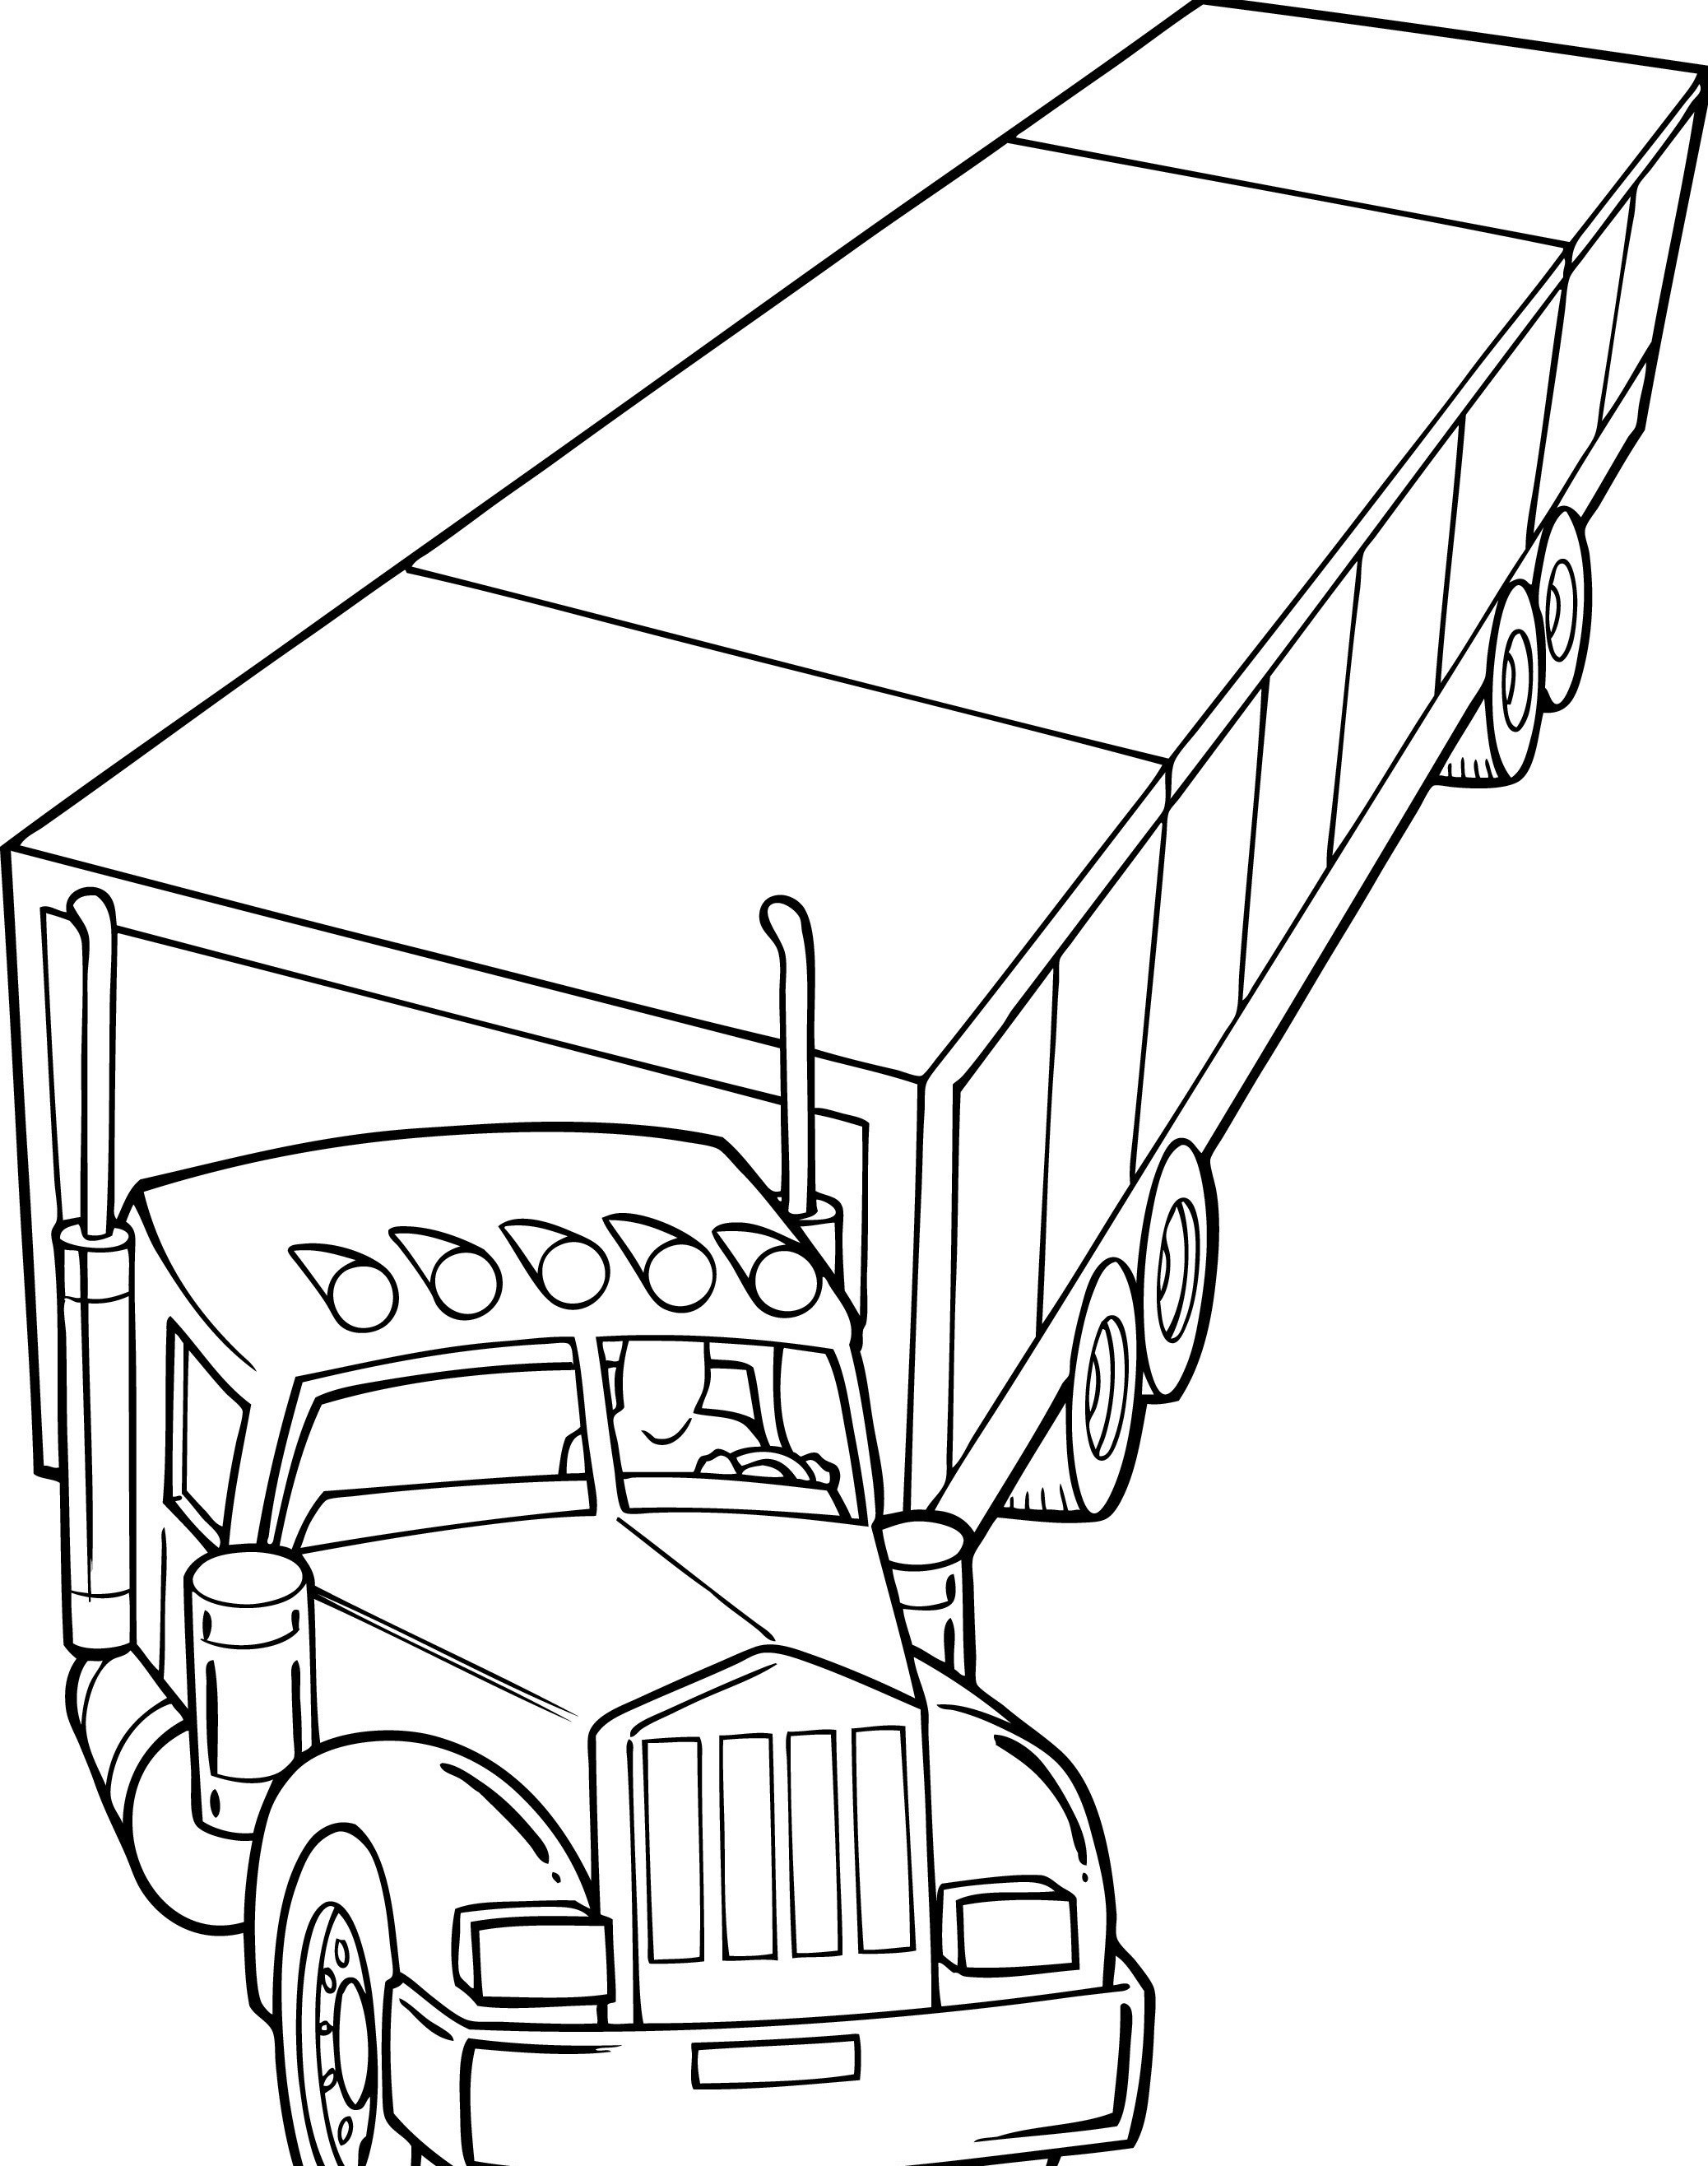 coloring truck pictures police truck coloring pages at getdrawings free download truck pictures coloring